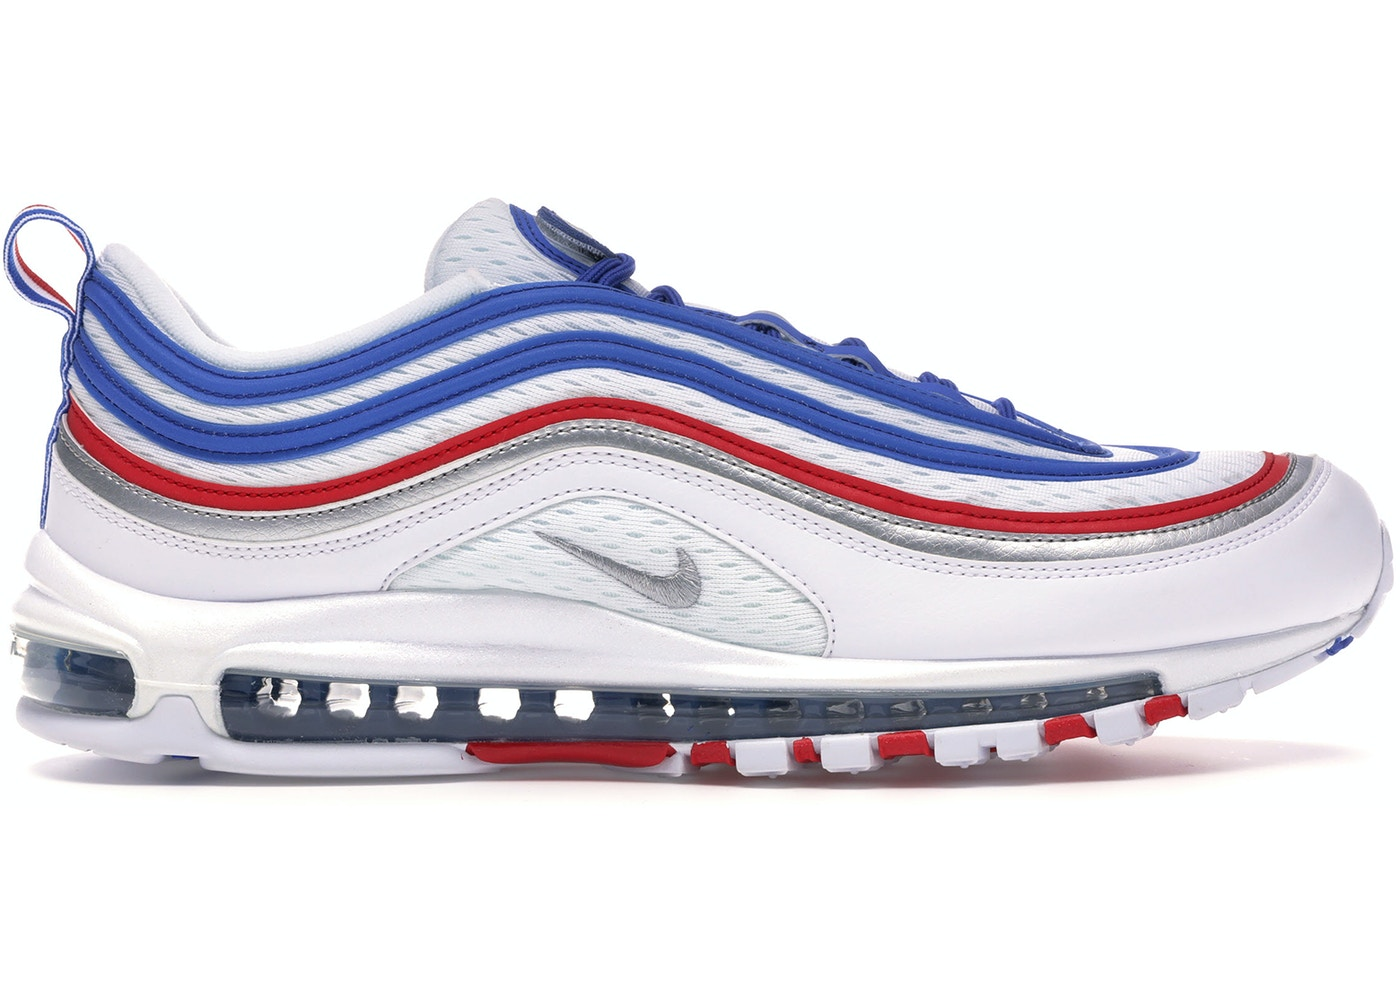 d01fea7b76 Air Max 97 Game Royal Metallic Silver University Red - 921826-404